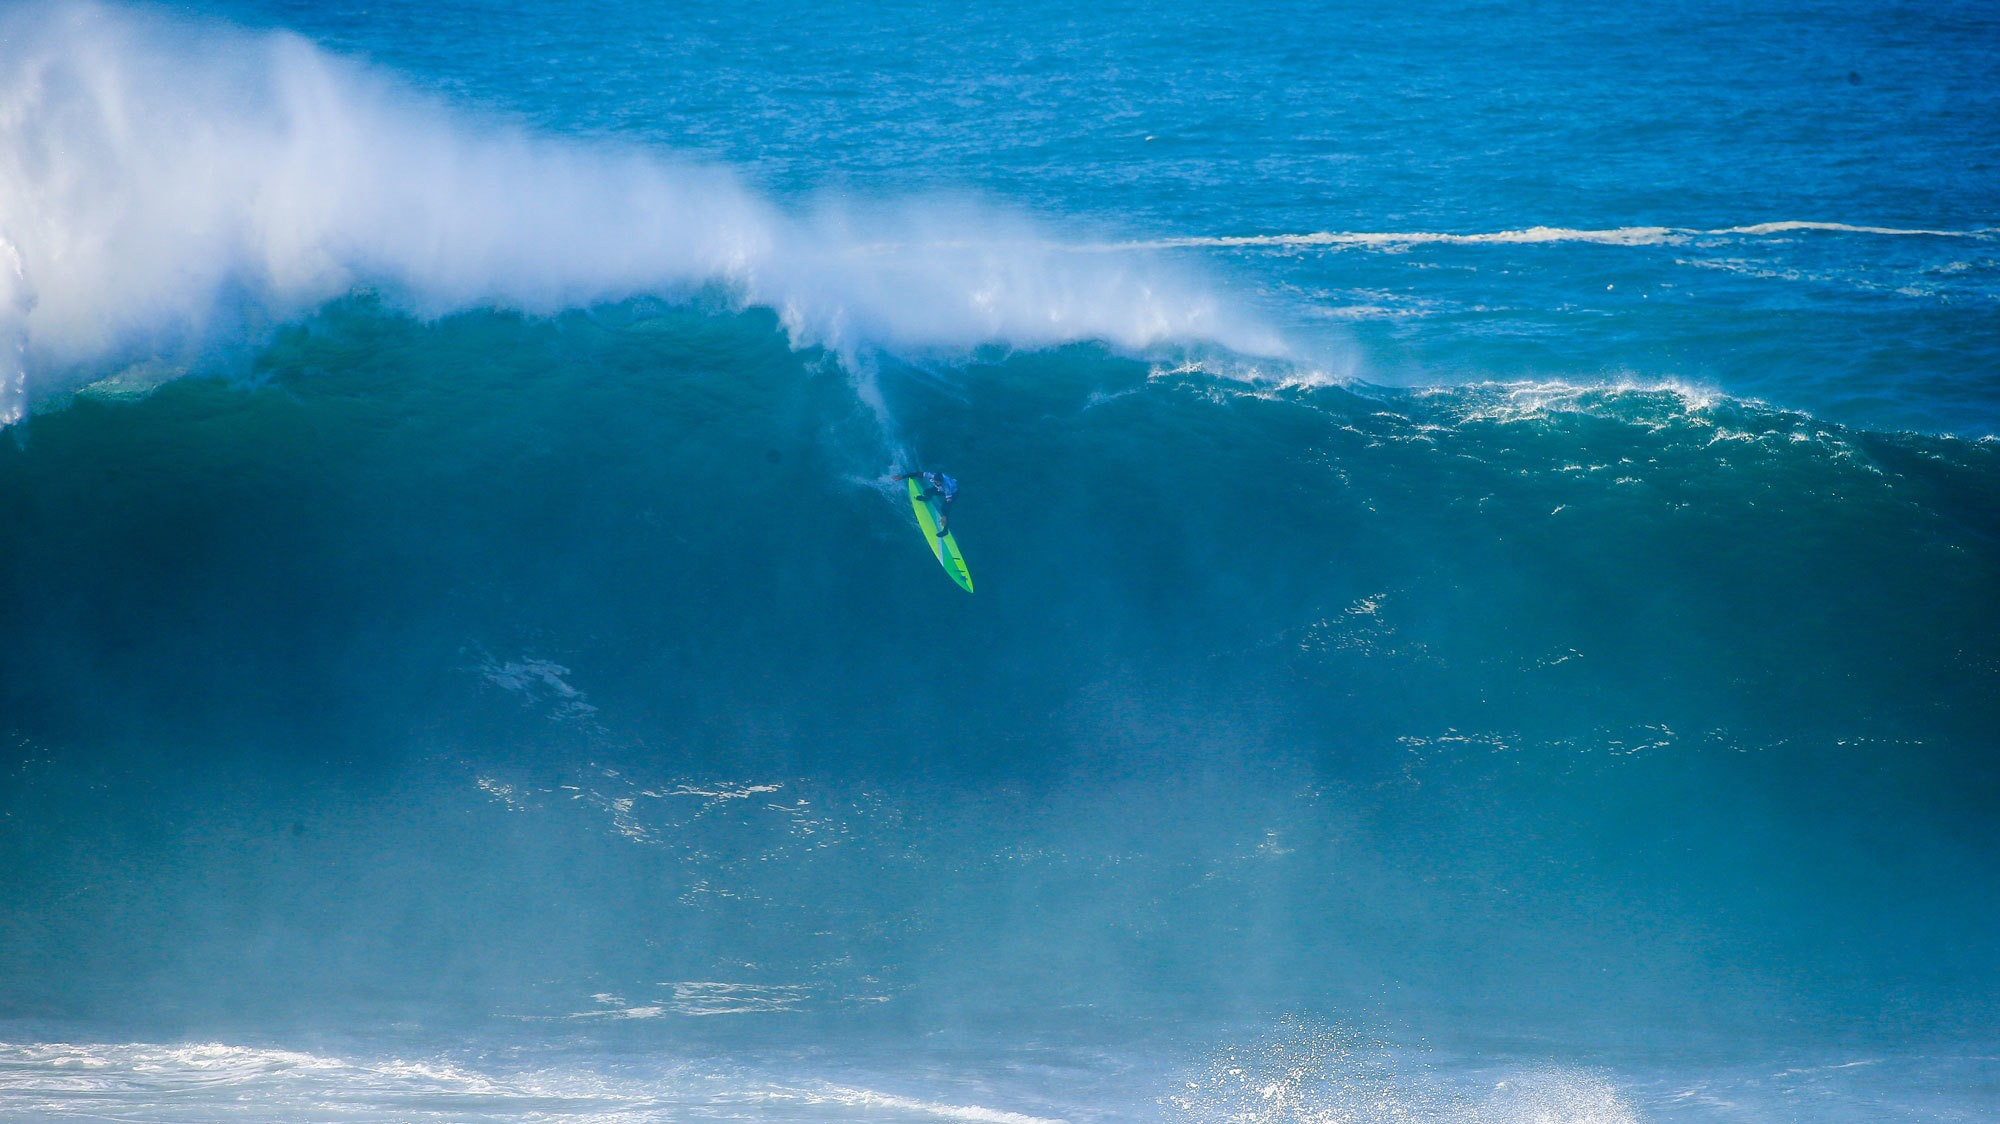 Is Portugal's Monster Wave Now Legit in the Eyes of Surfing's Elite?